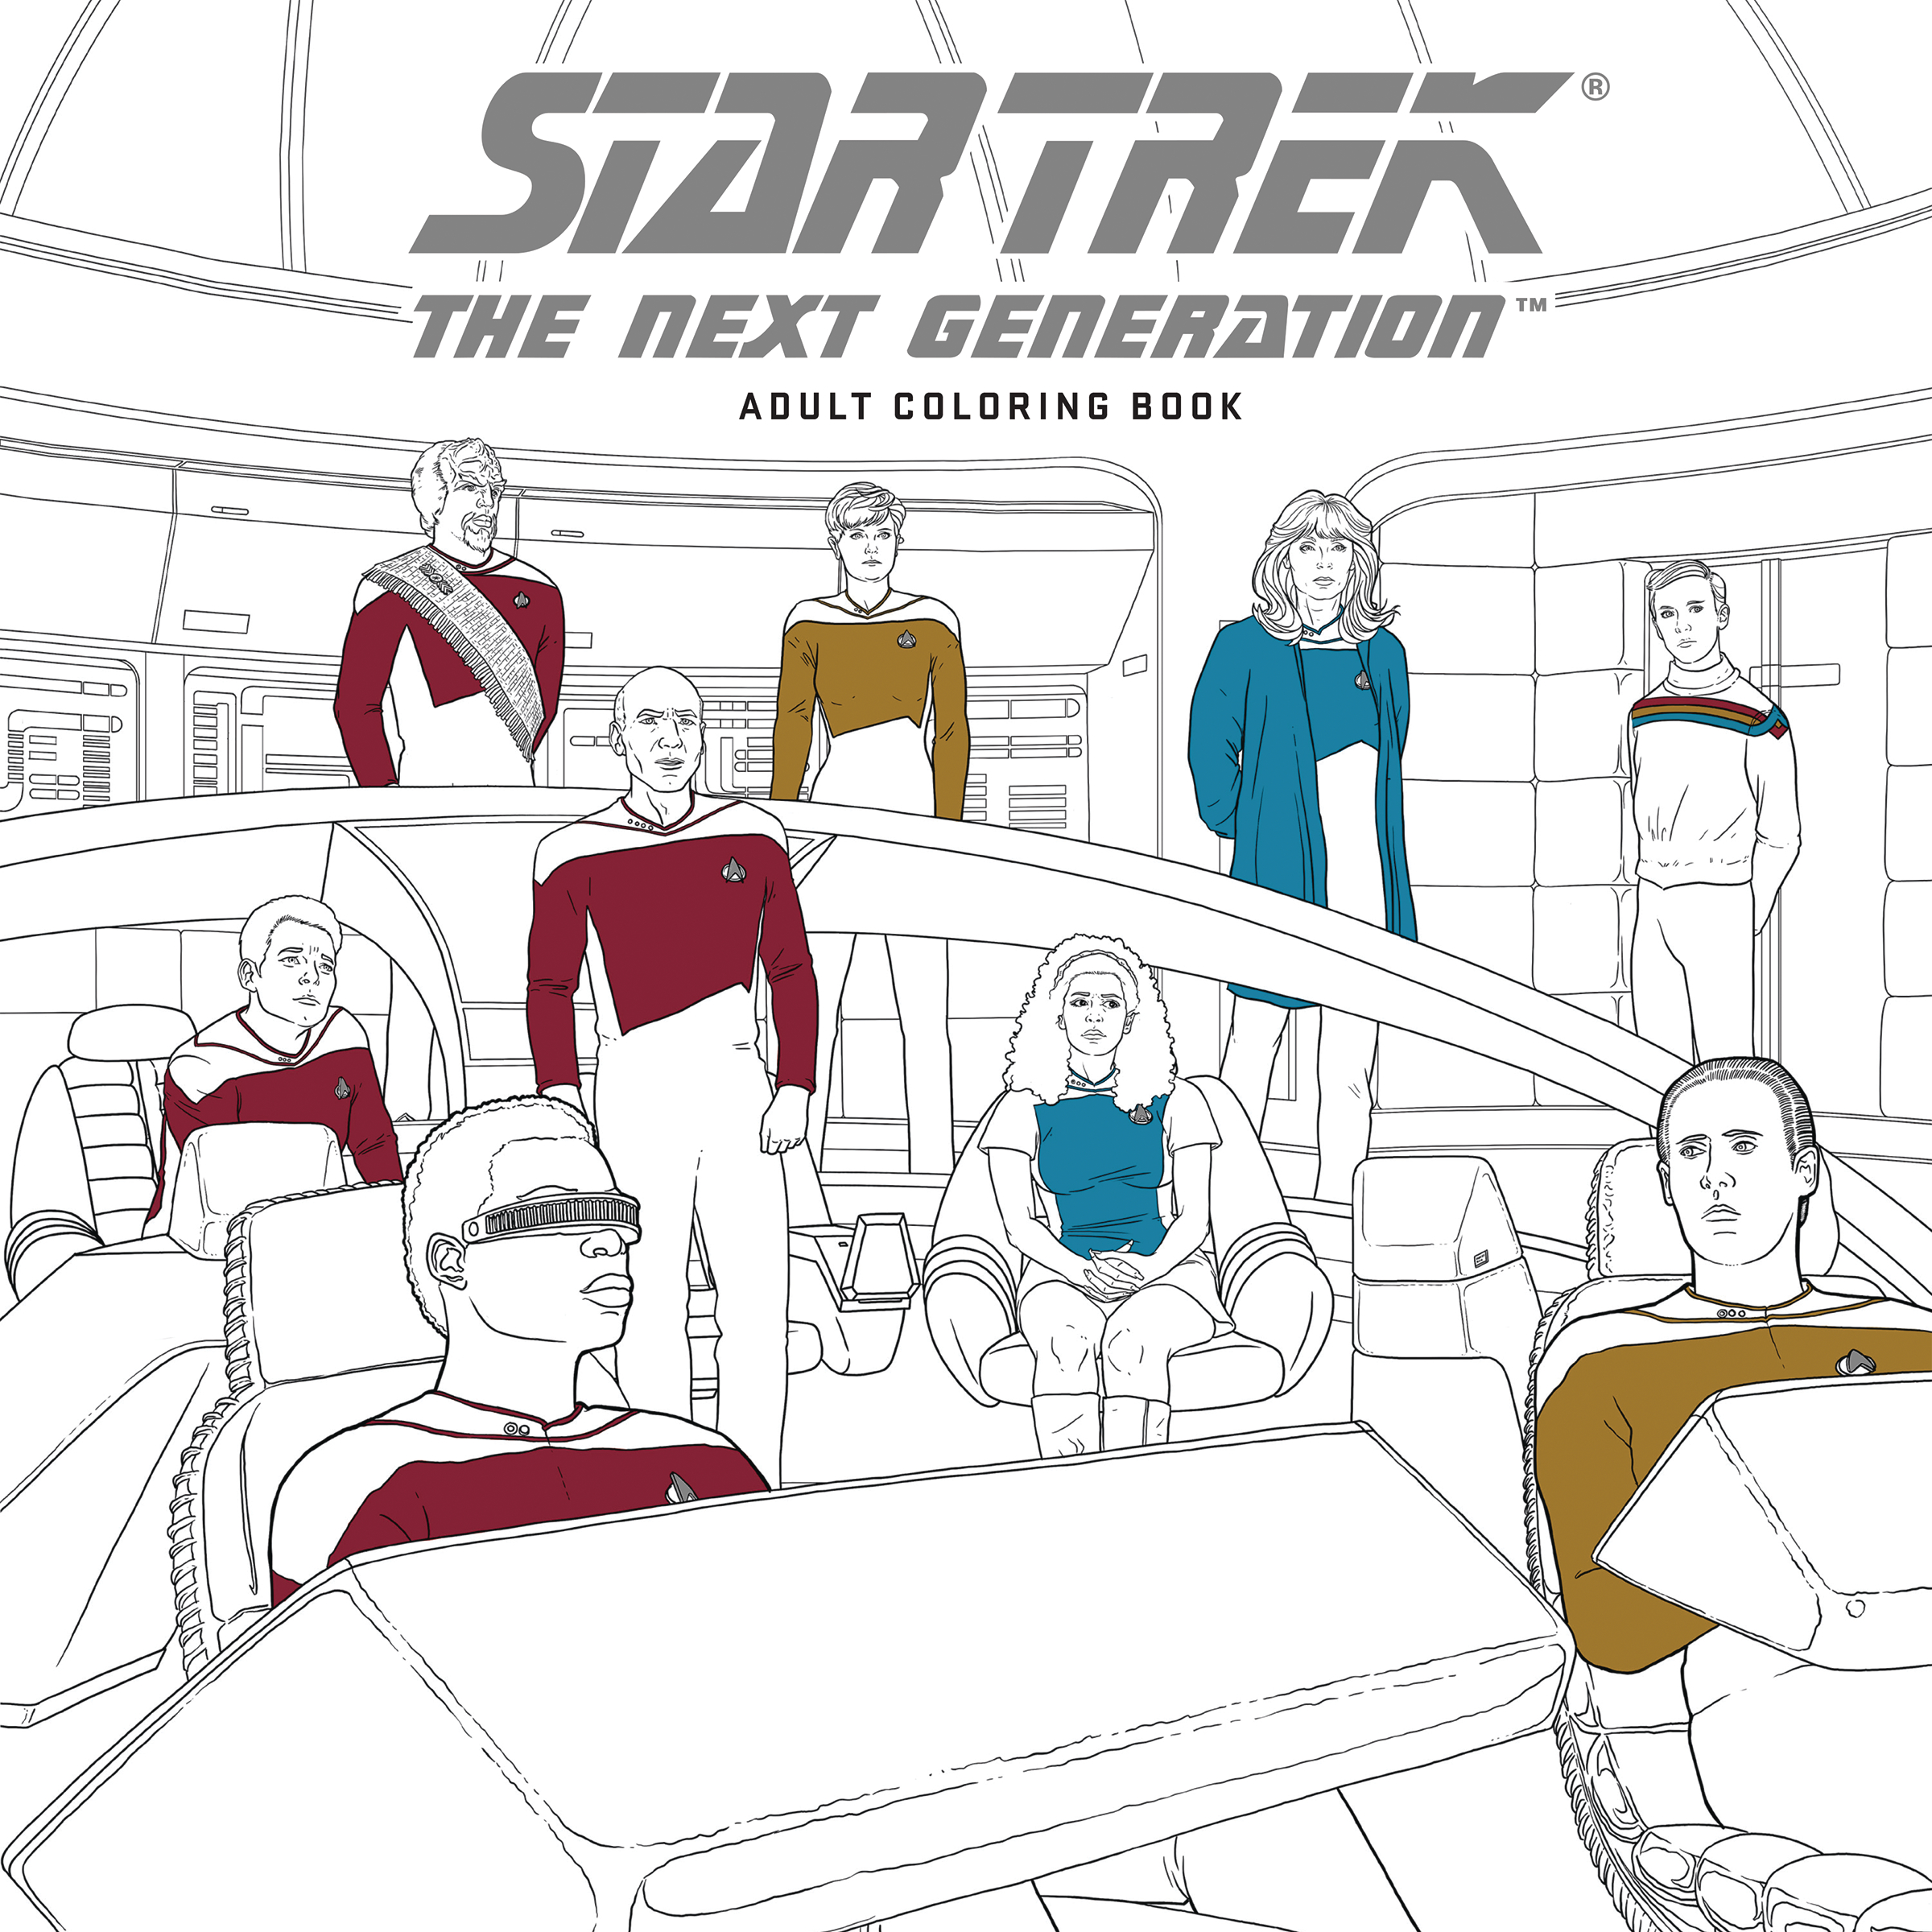 star trek next gen adult coloring bk tp - Star Trek Coloring Book